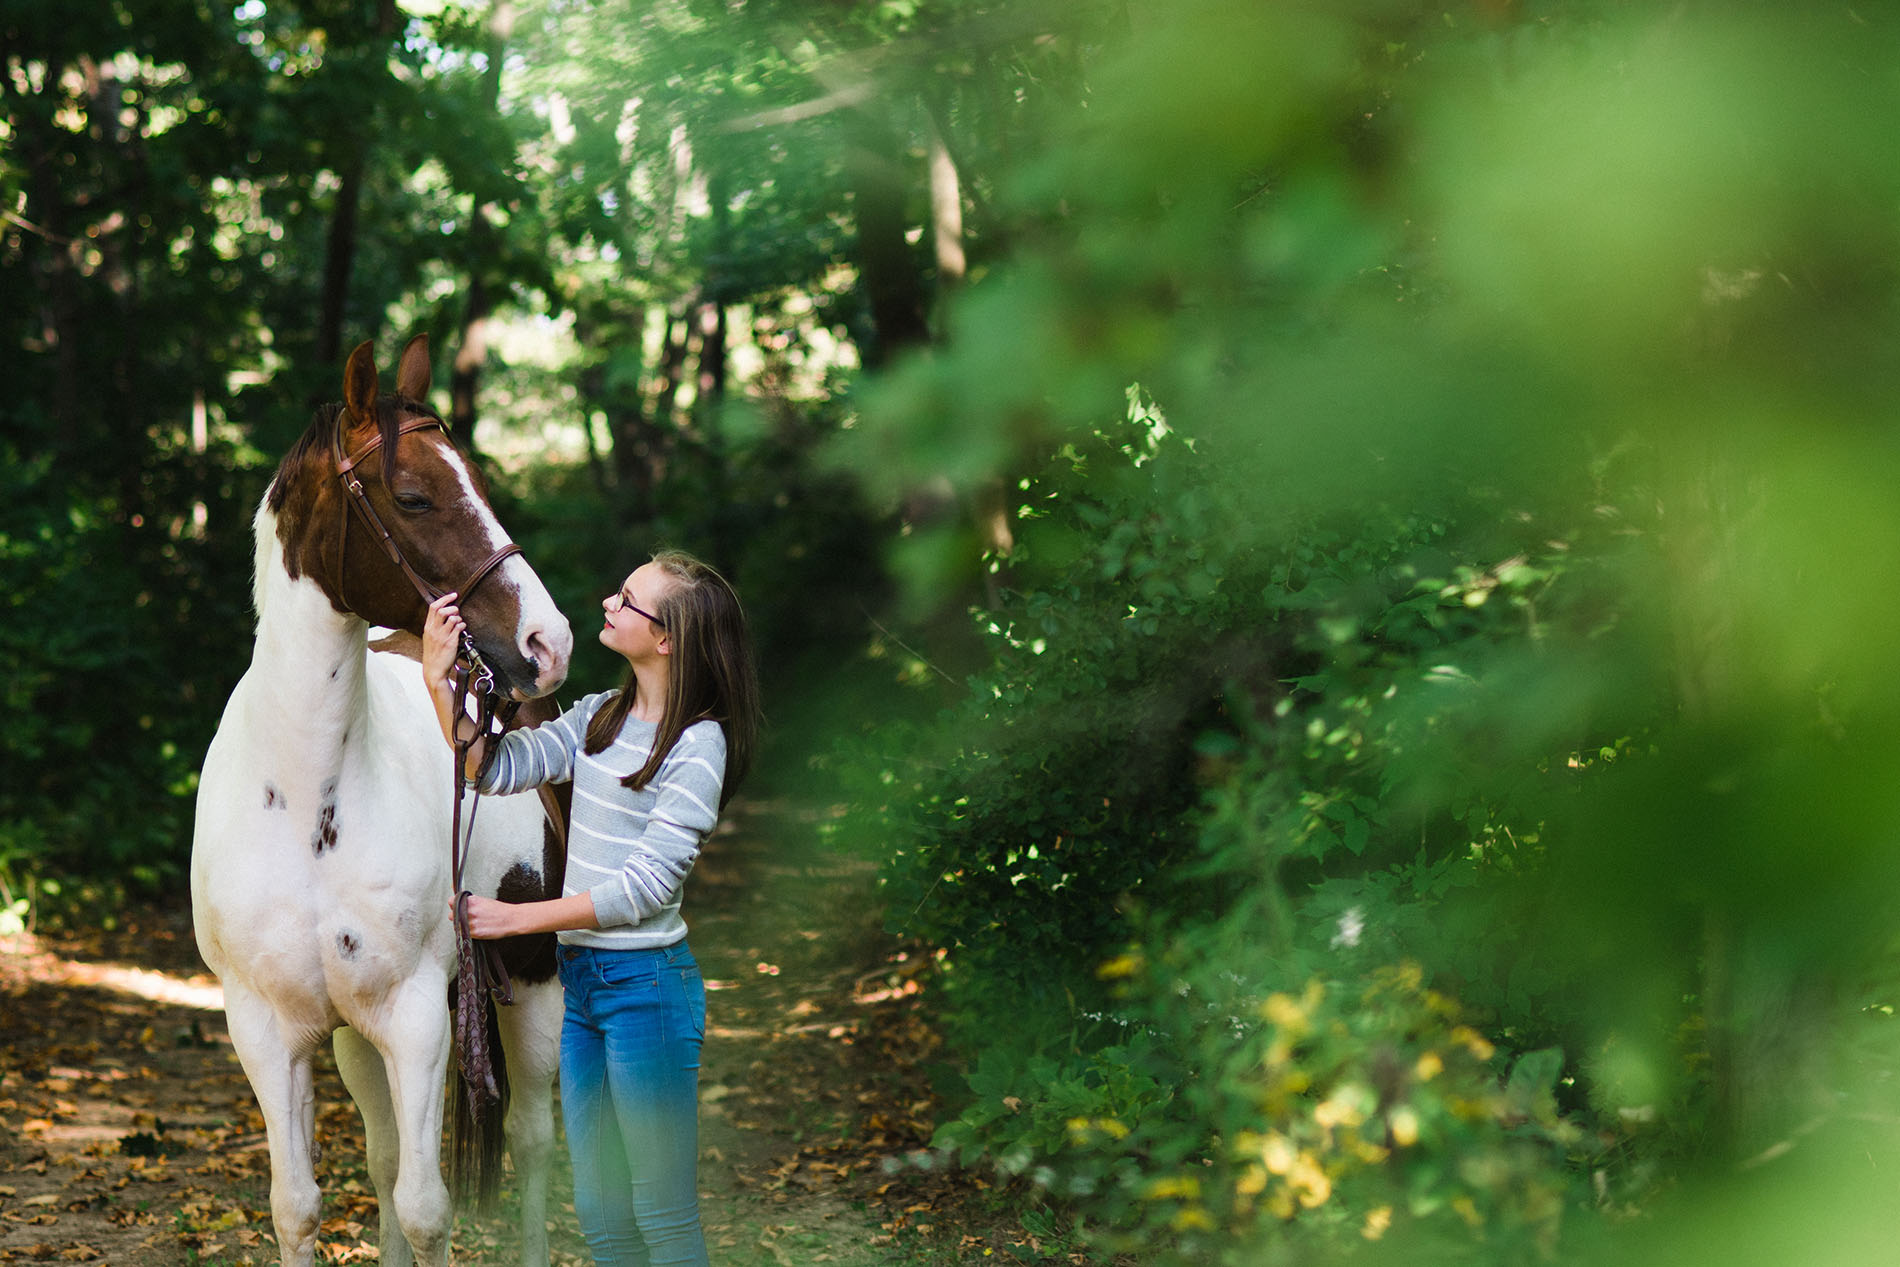 photo of a girl and a horse by Jessica Svoboda